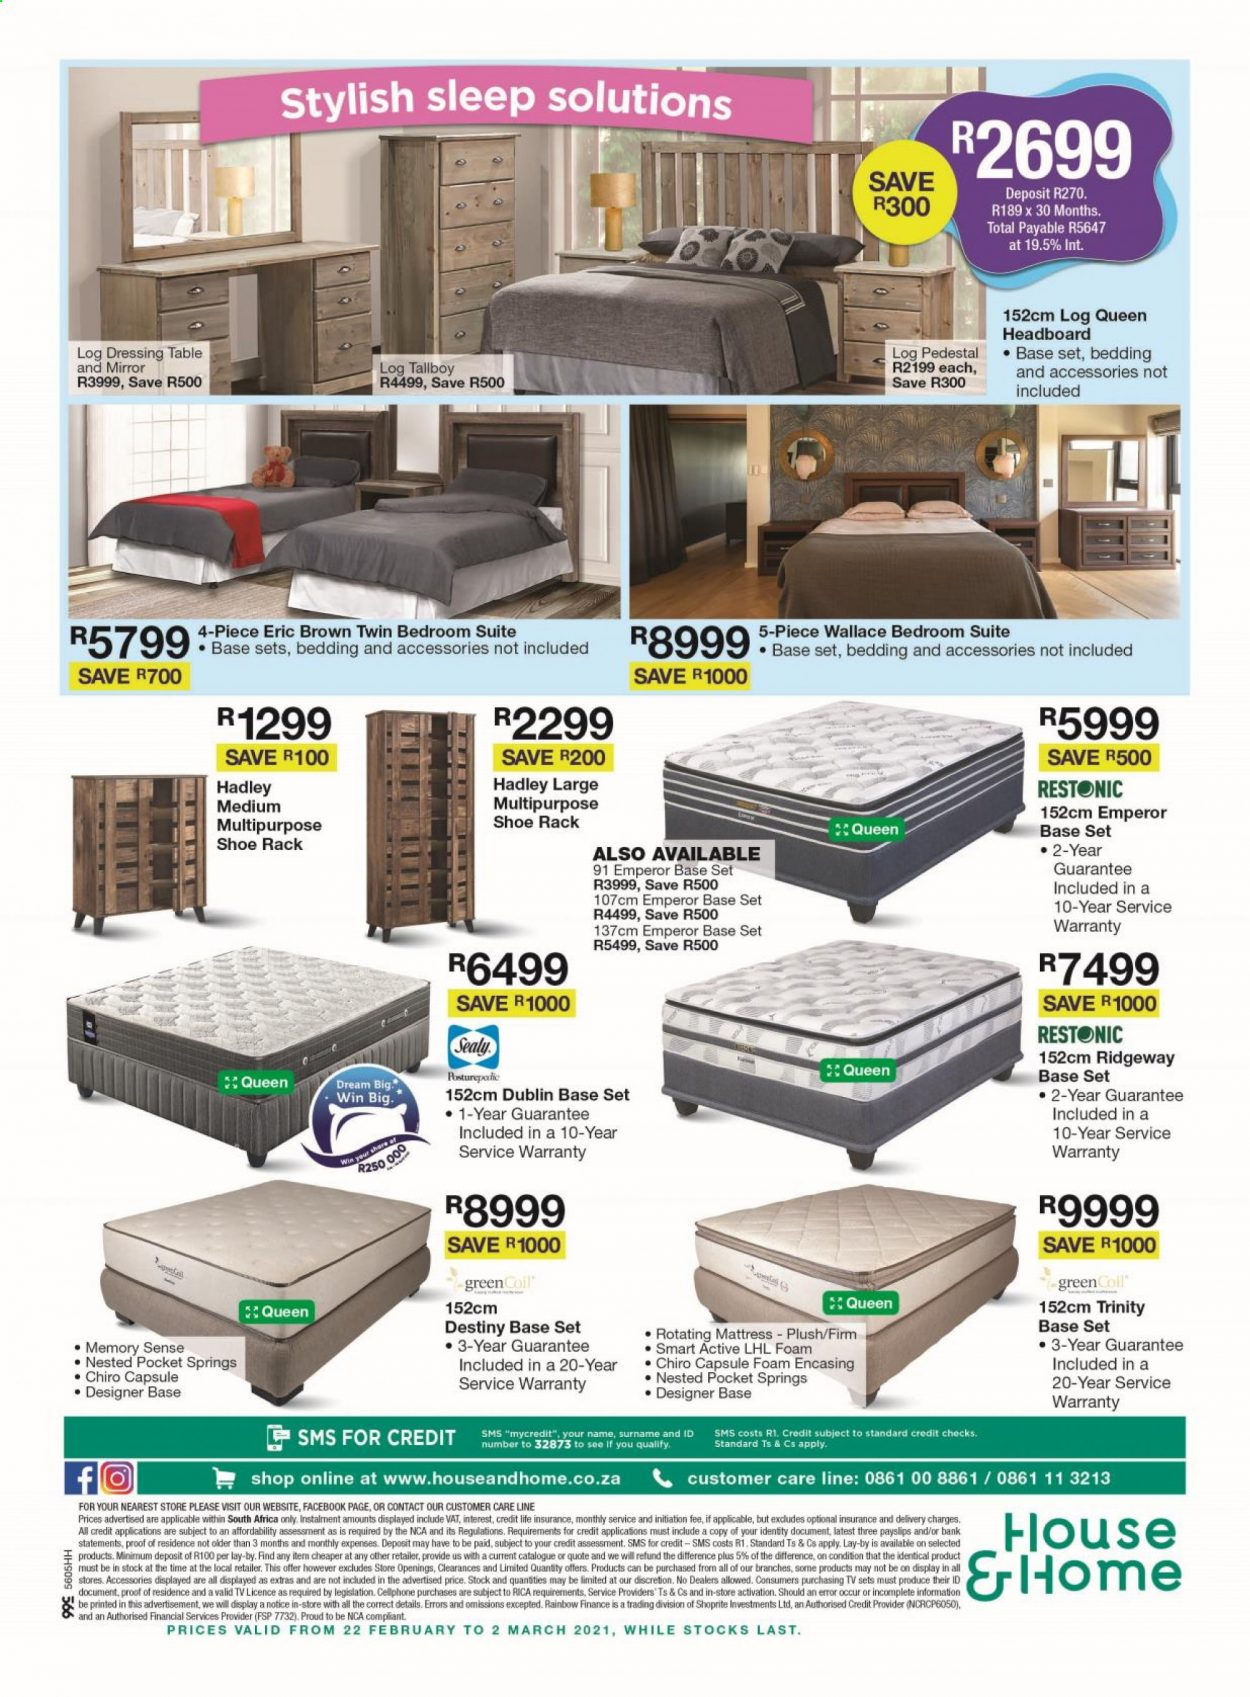 House & Home catalogue  - 02.22.2021 - 03.02.2021. Page 8.